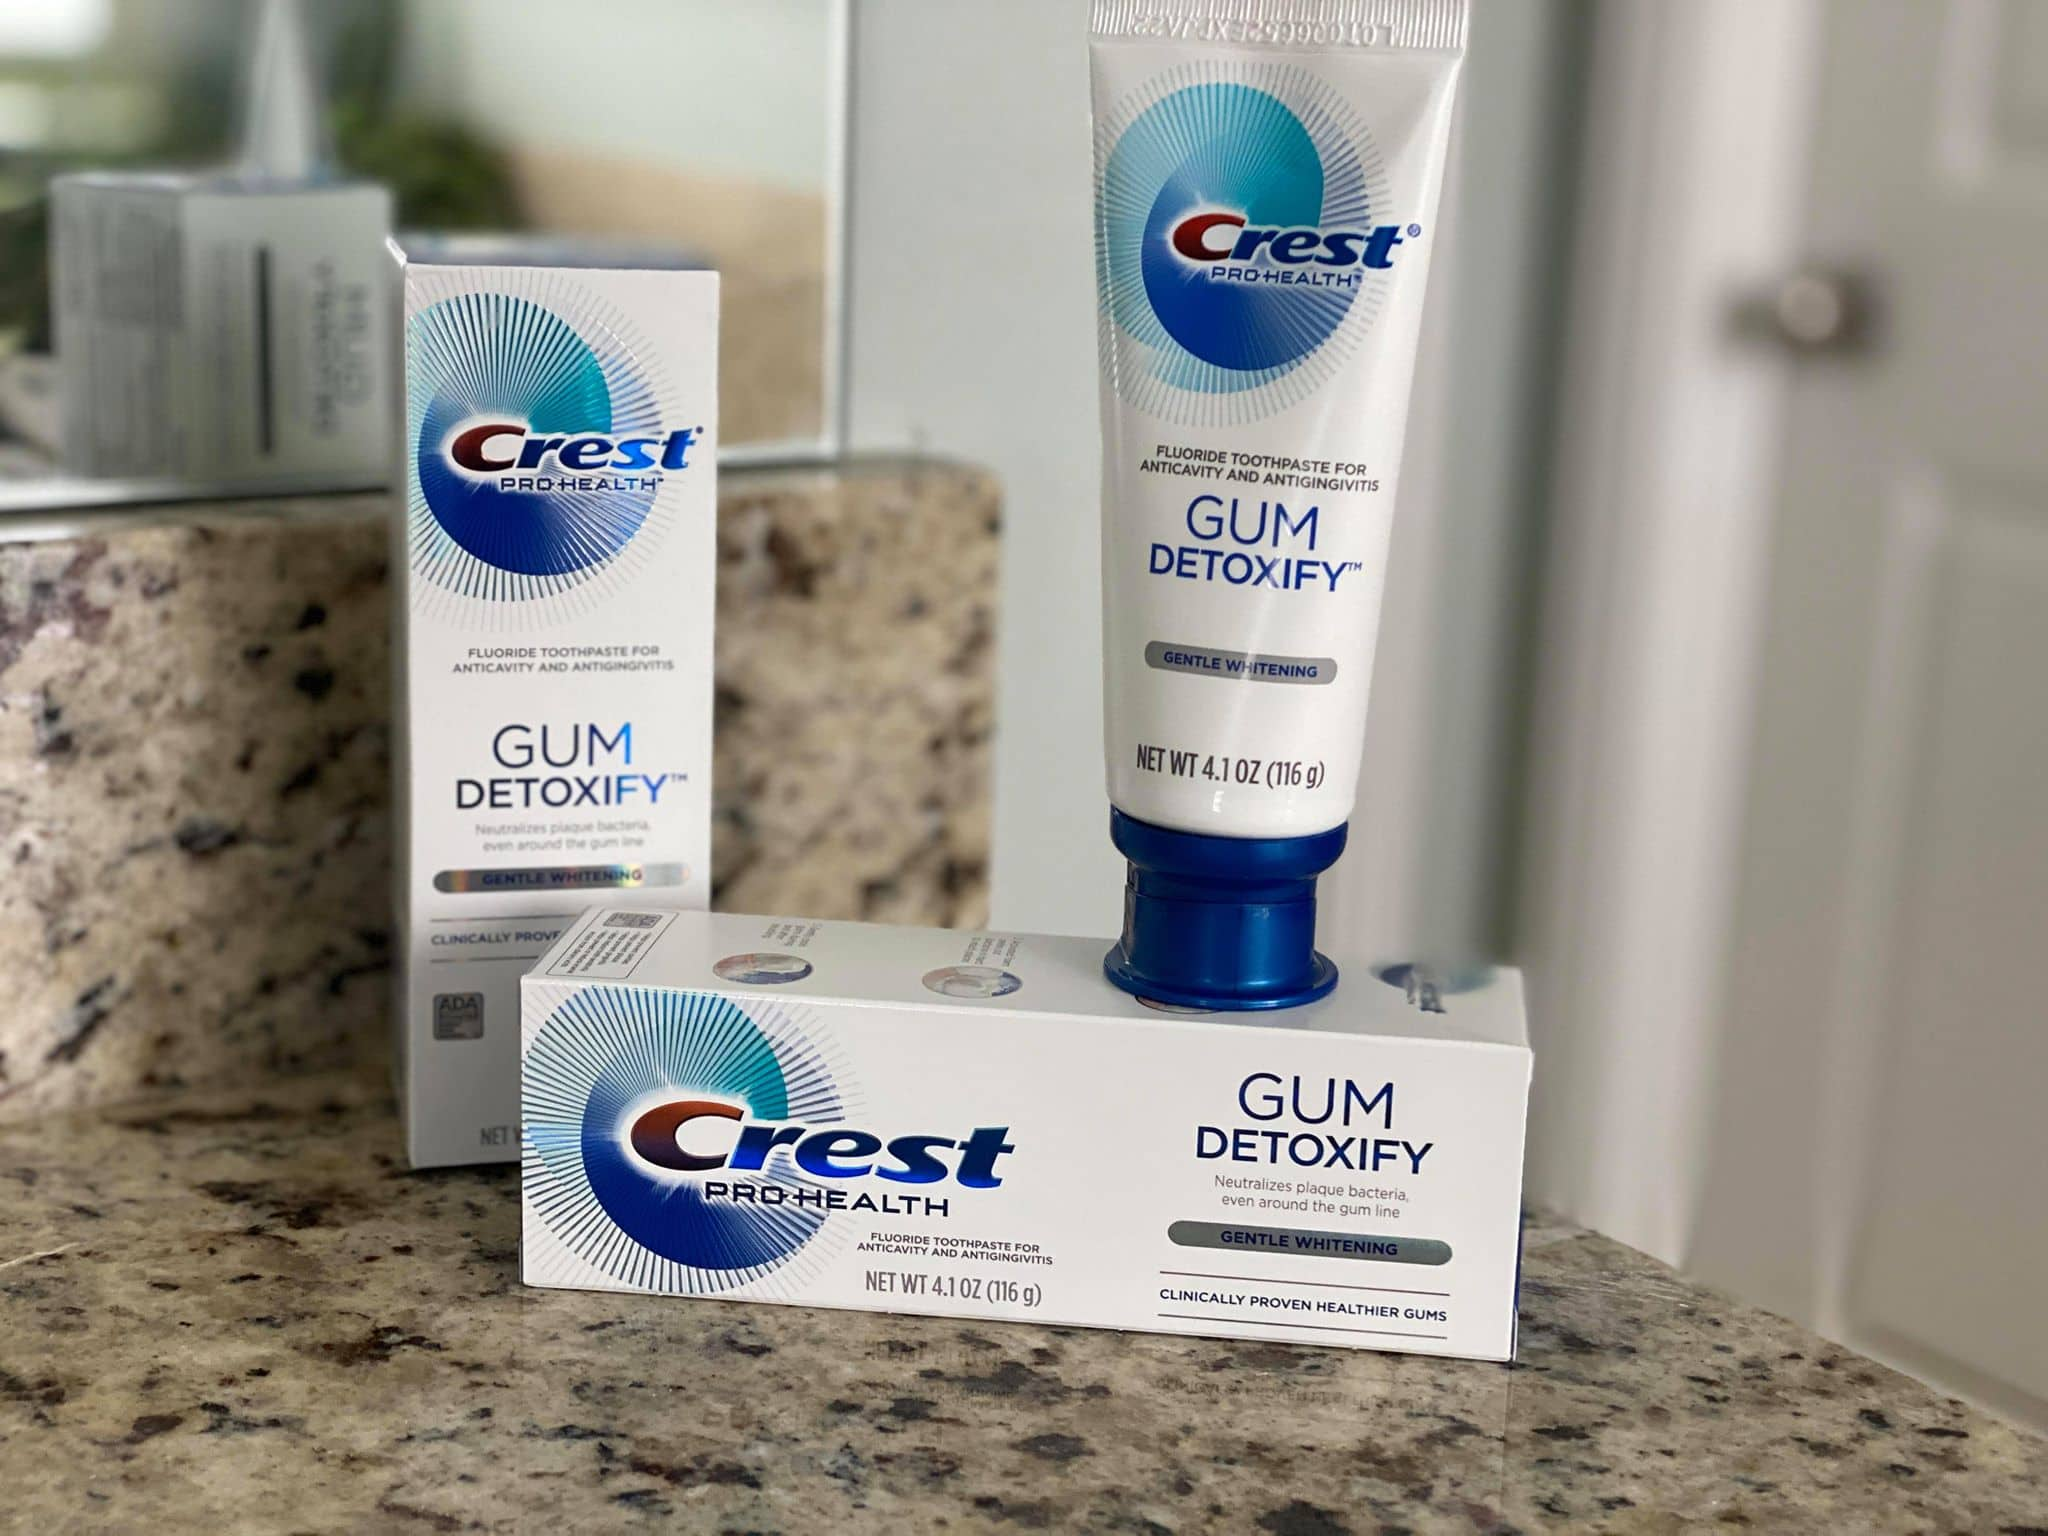 Crest Gum Detoxify Save 9 At Walgreens This Week